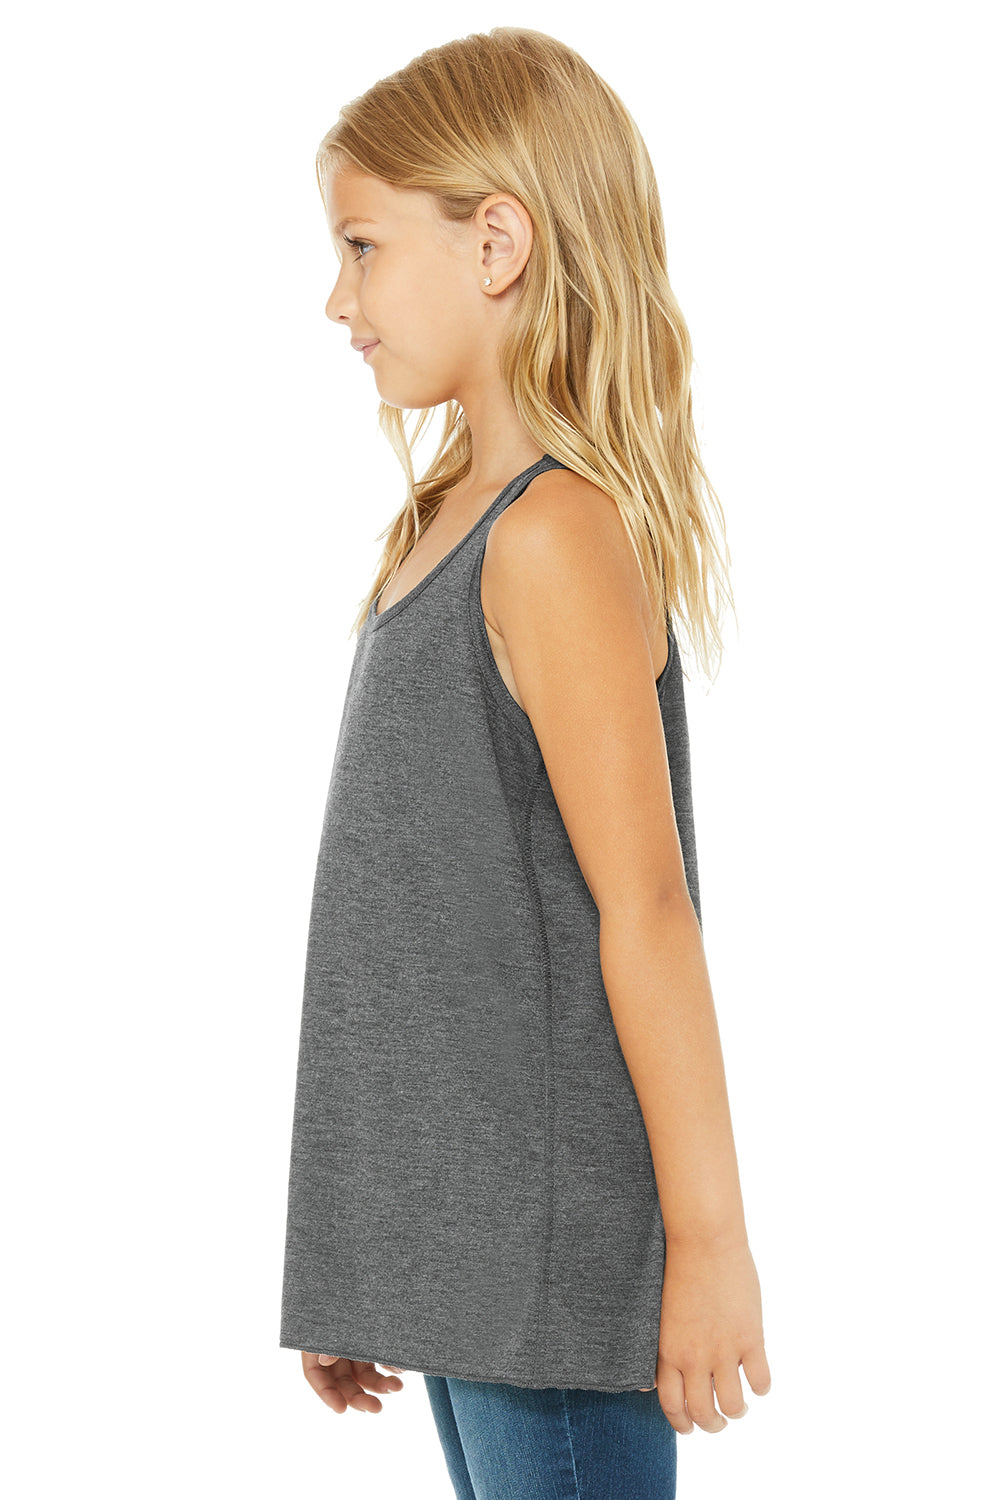 Bella + Canvas B8800Y Youth Flowy Tank Top Heather Dark Grey Side